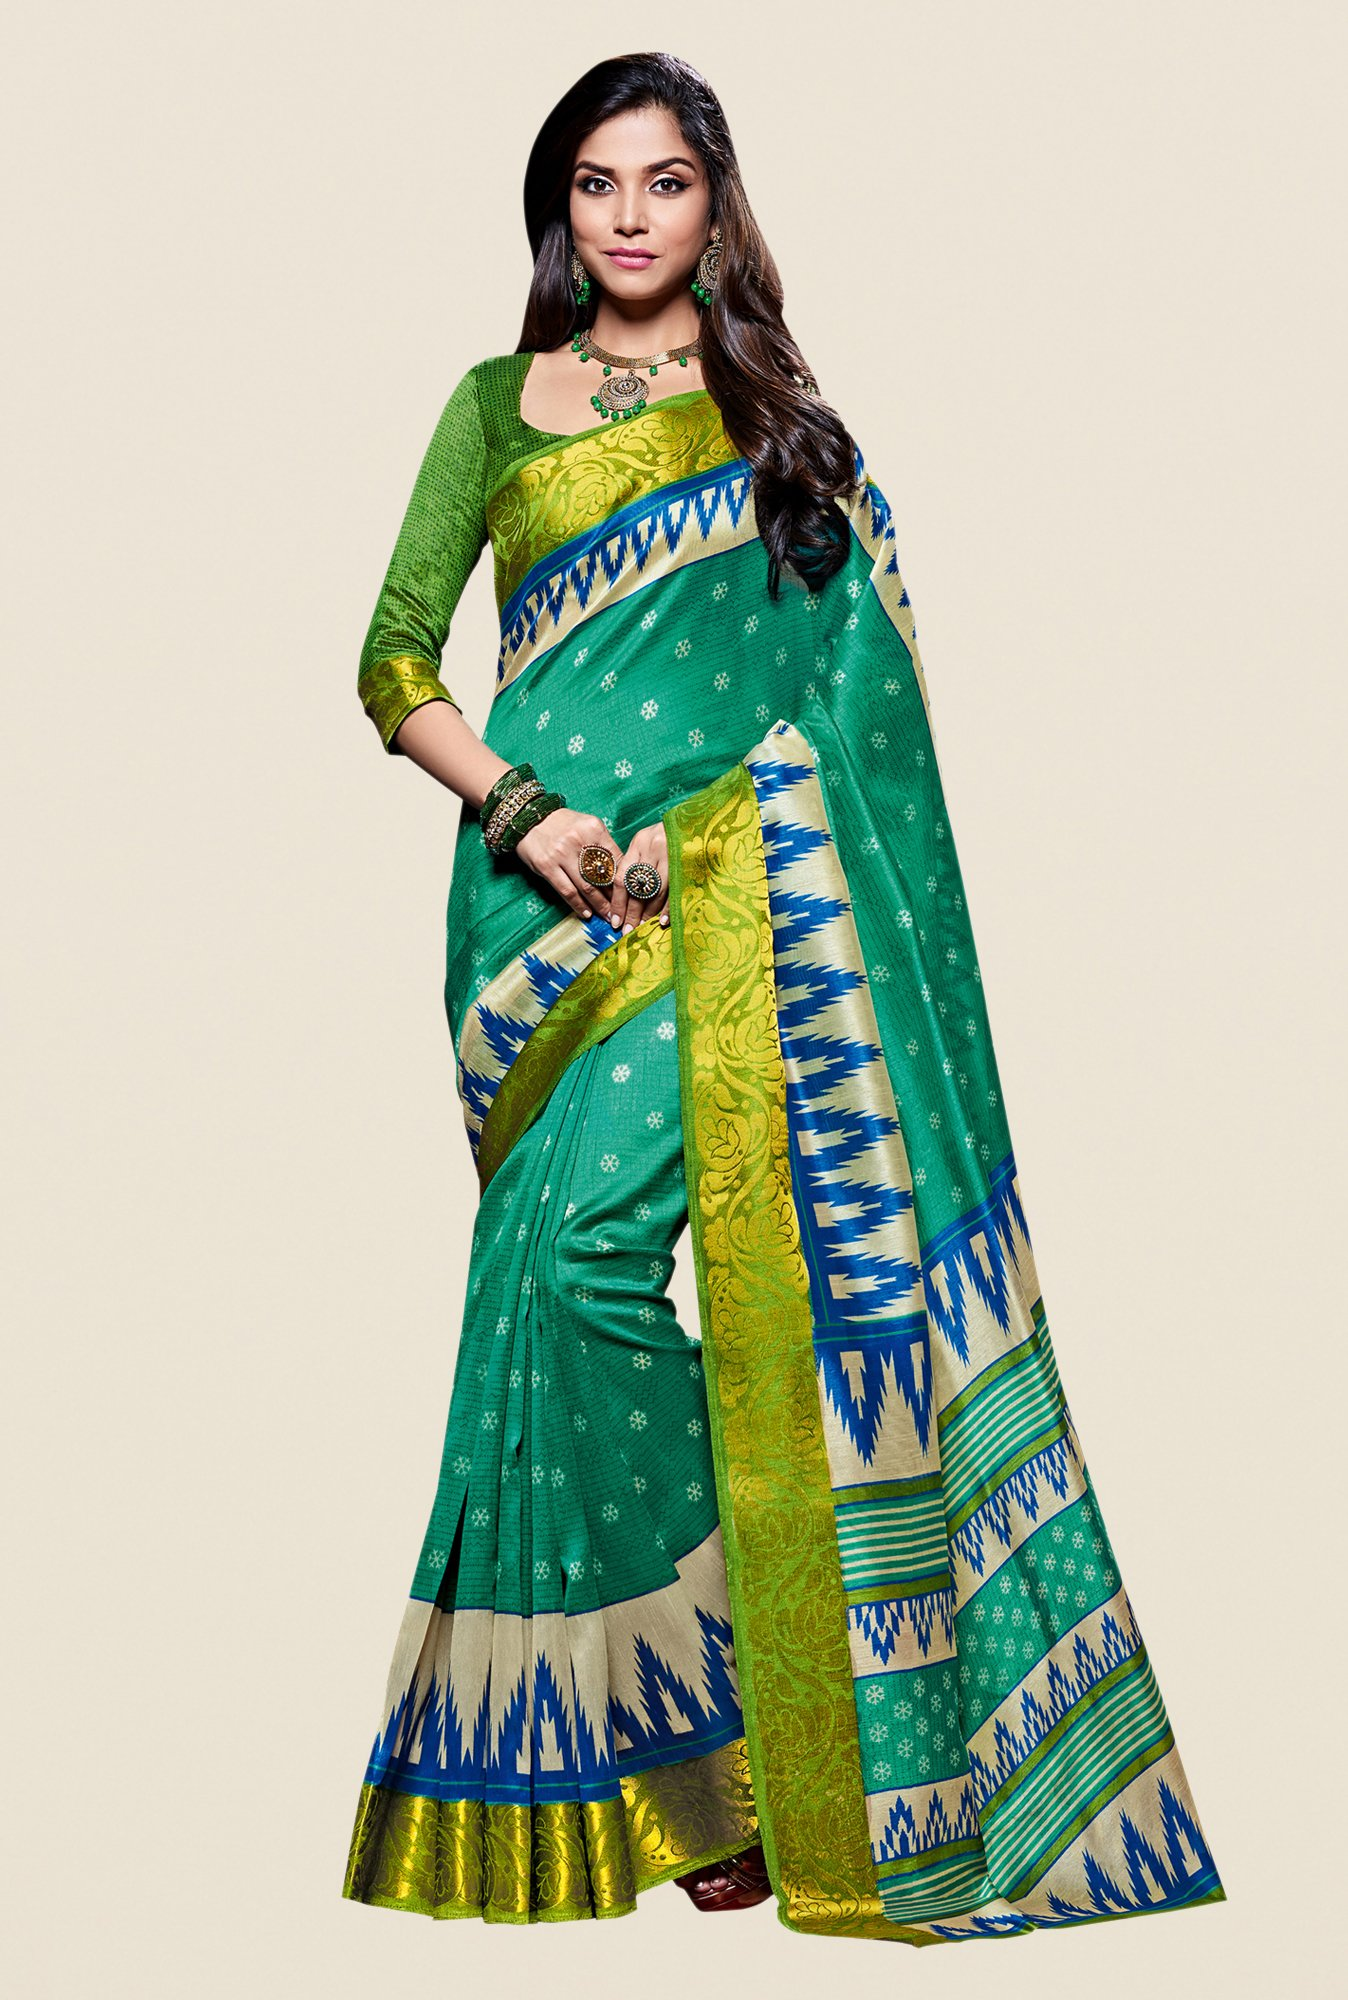 Shonaya Green Kanjivaram Art Silk Saree